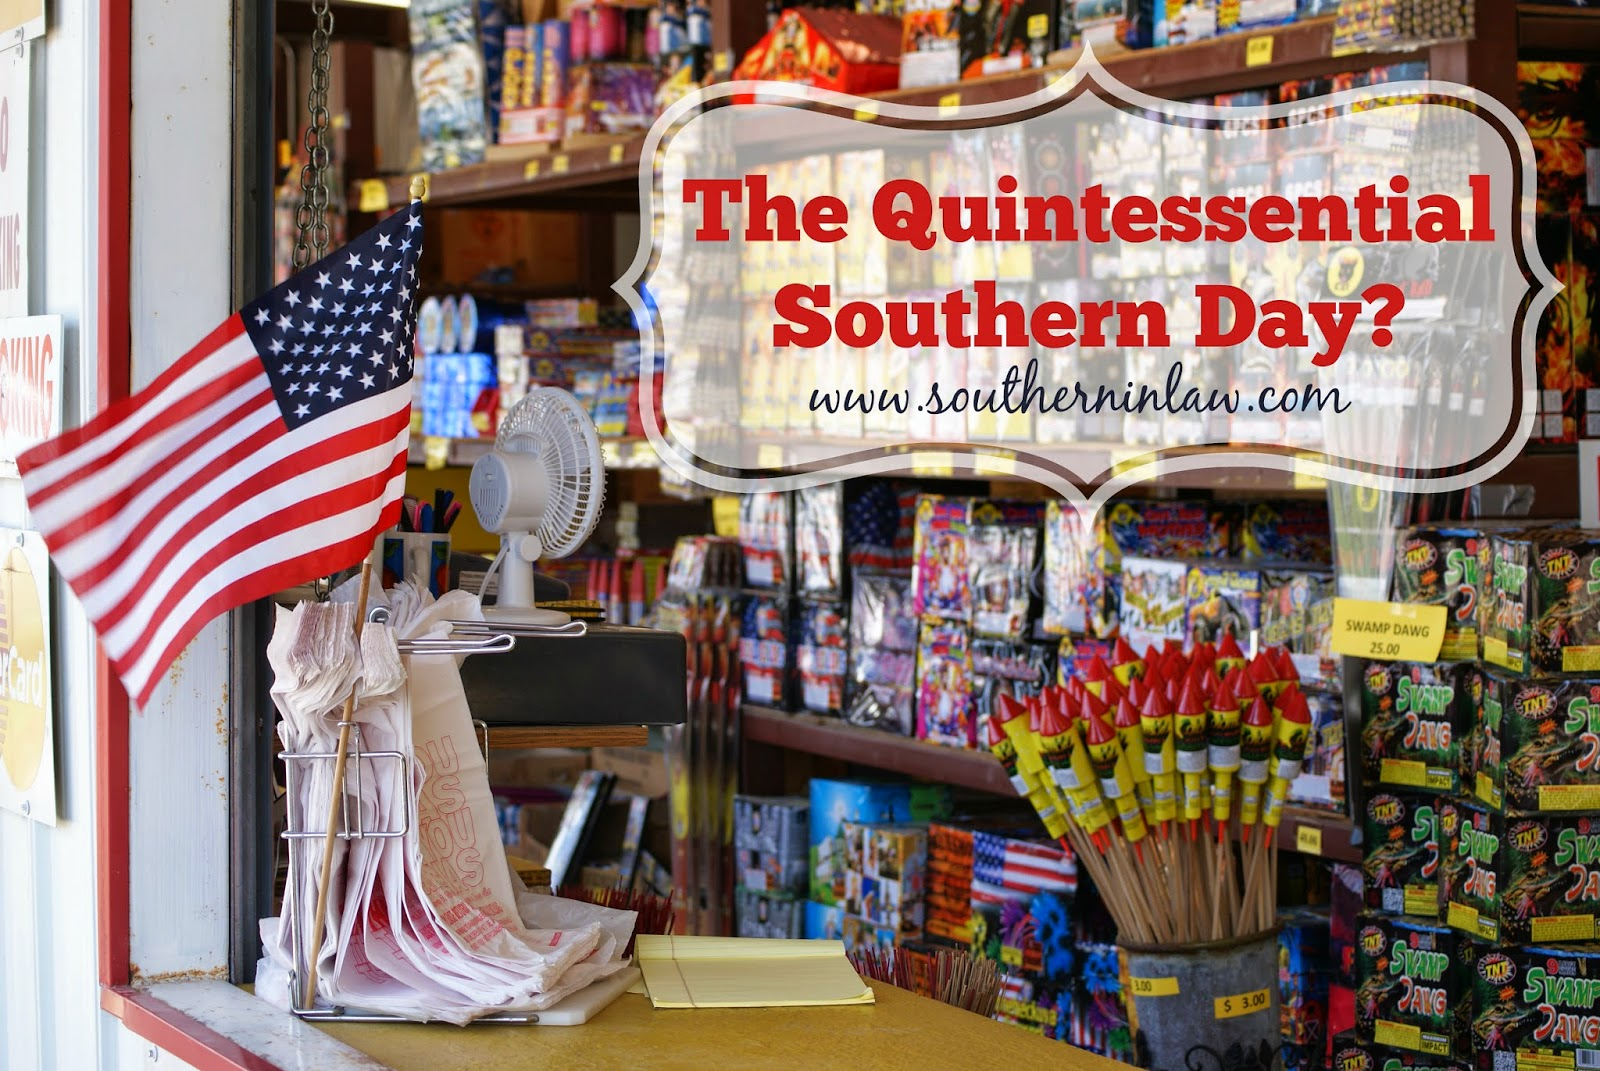 The quintessential Southern Day